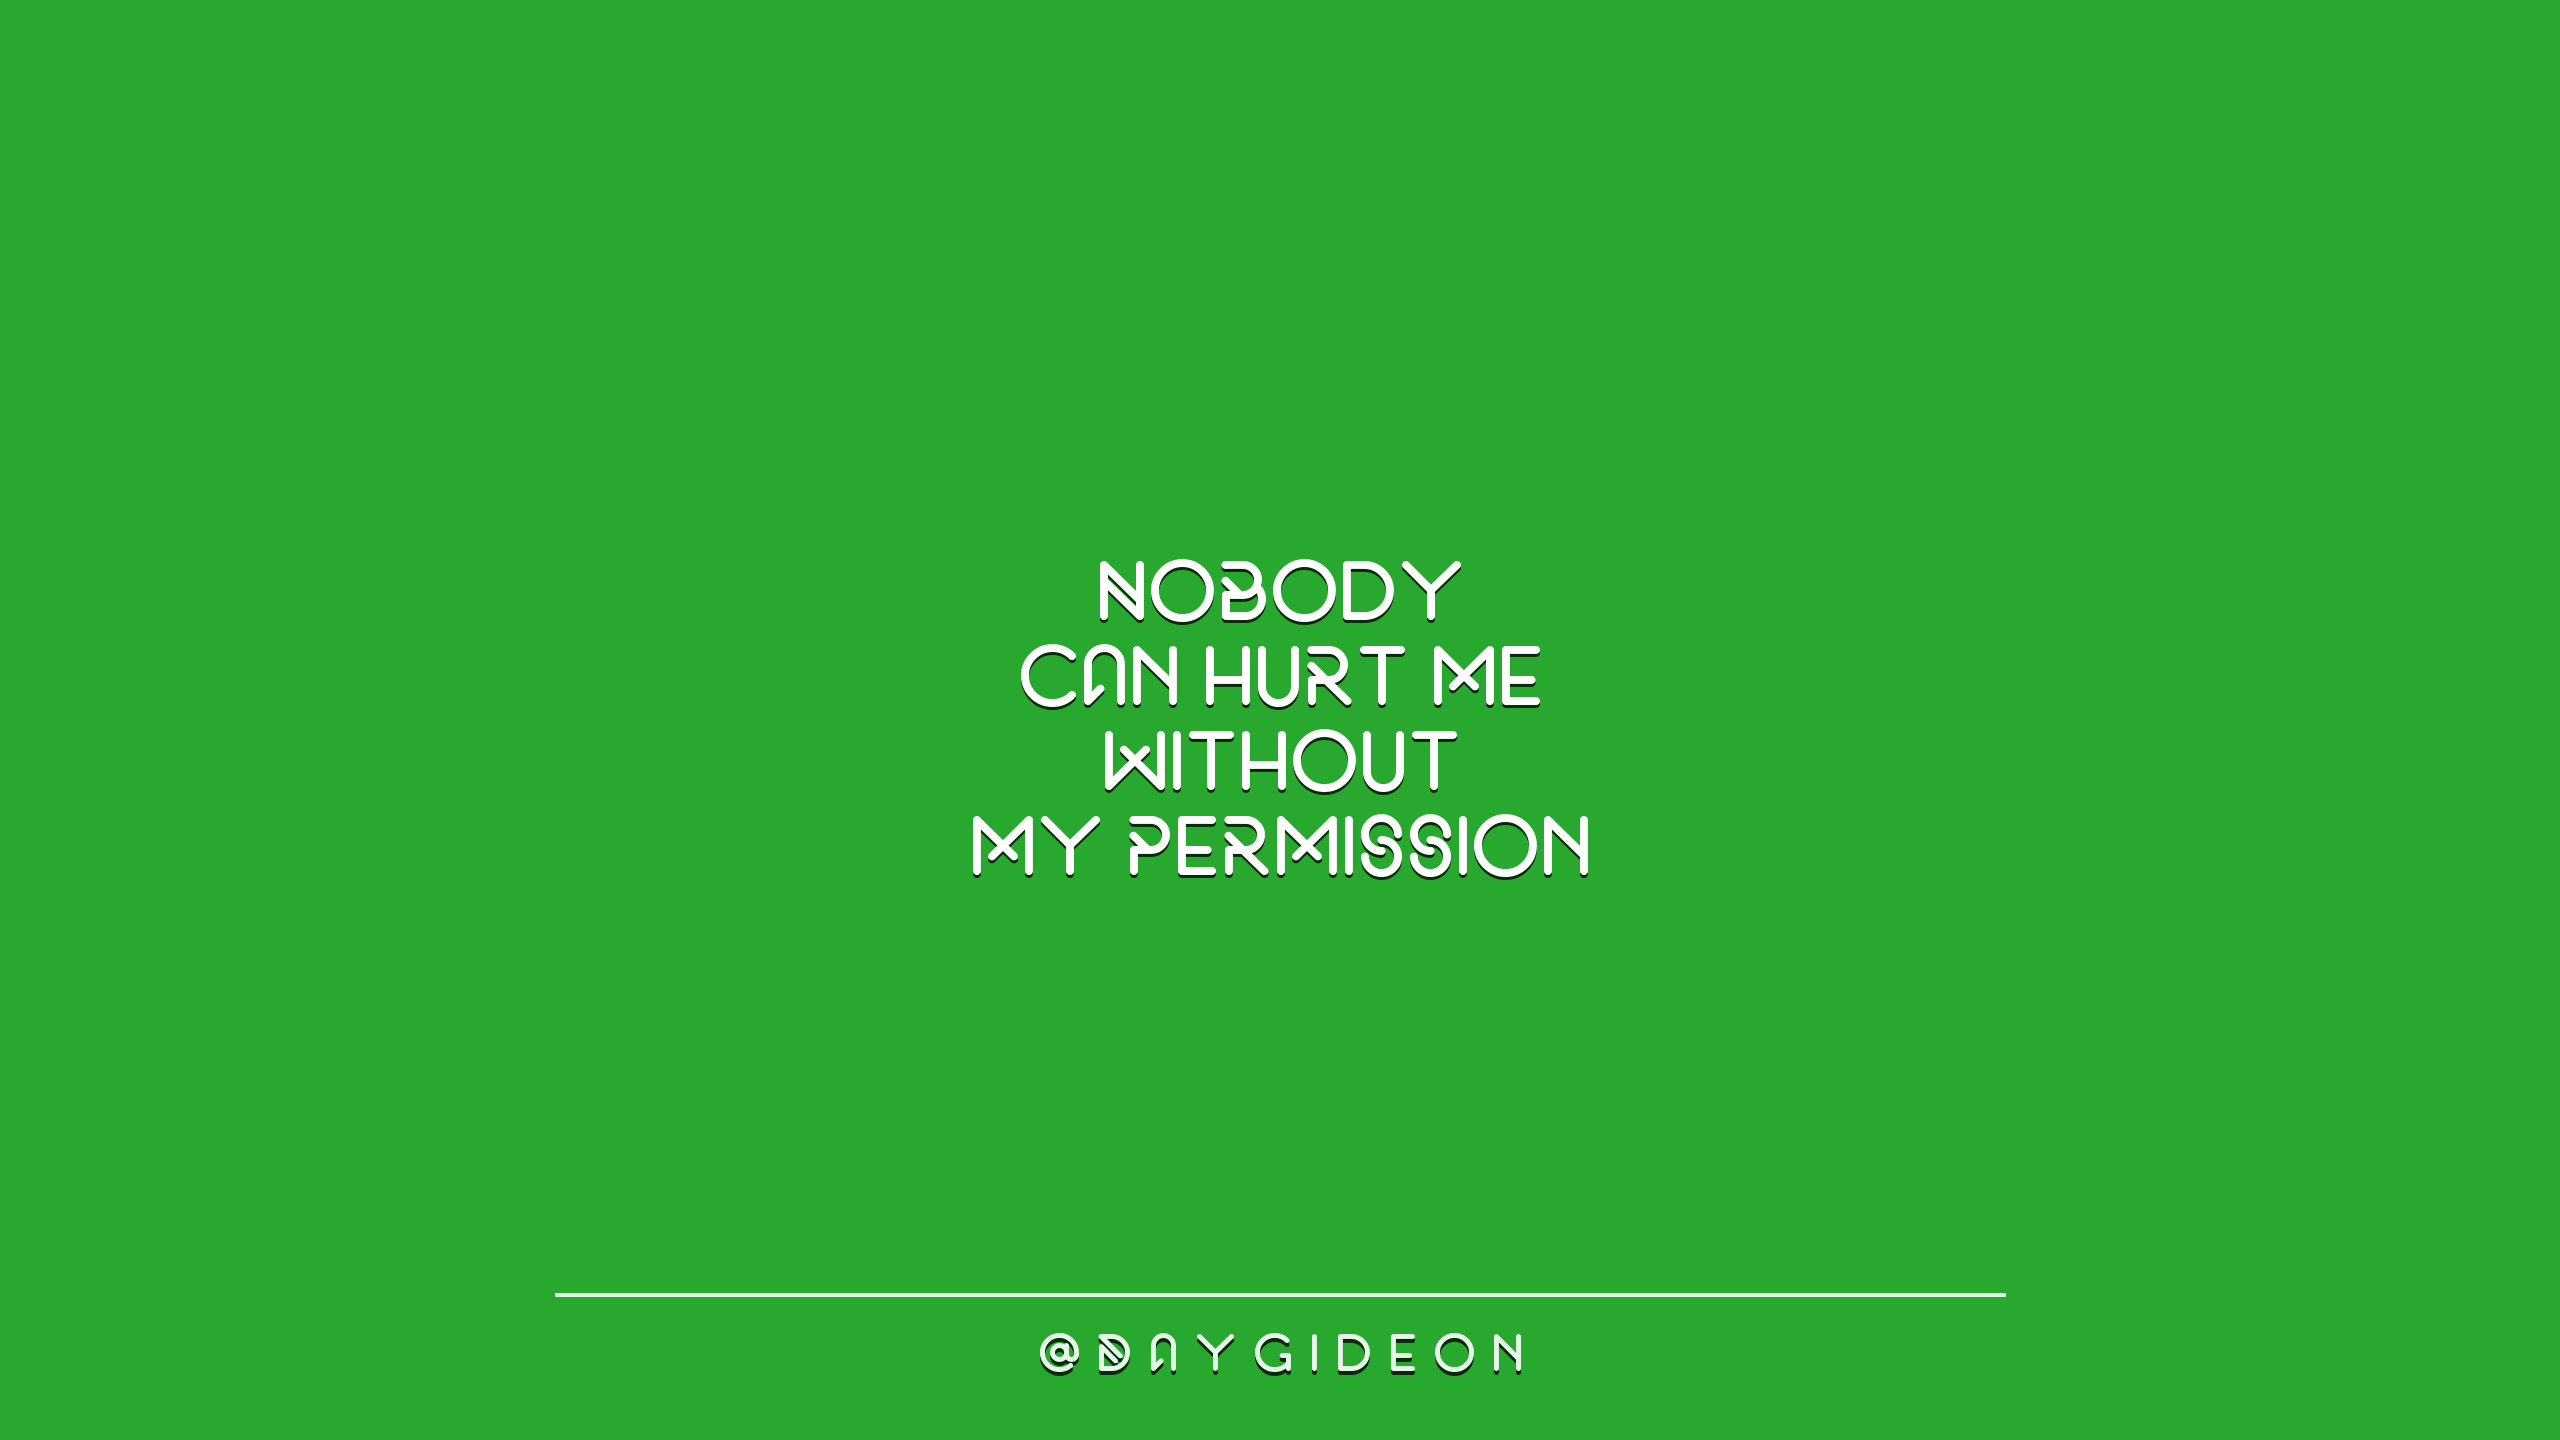 Green,                Text,                Font,                Grass,                Brand,                Product,                Graphics,                Computer,                Wallpaper,                Saying,                Wallpaper,                Quote,                Wording,                 Free Image